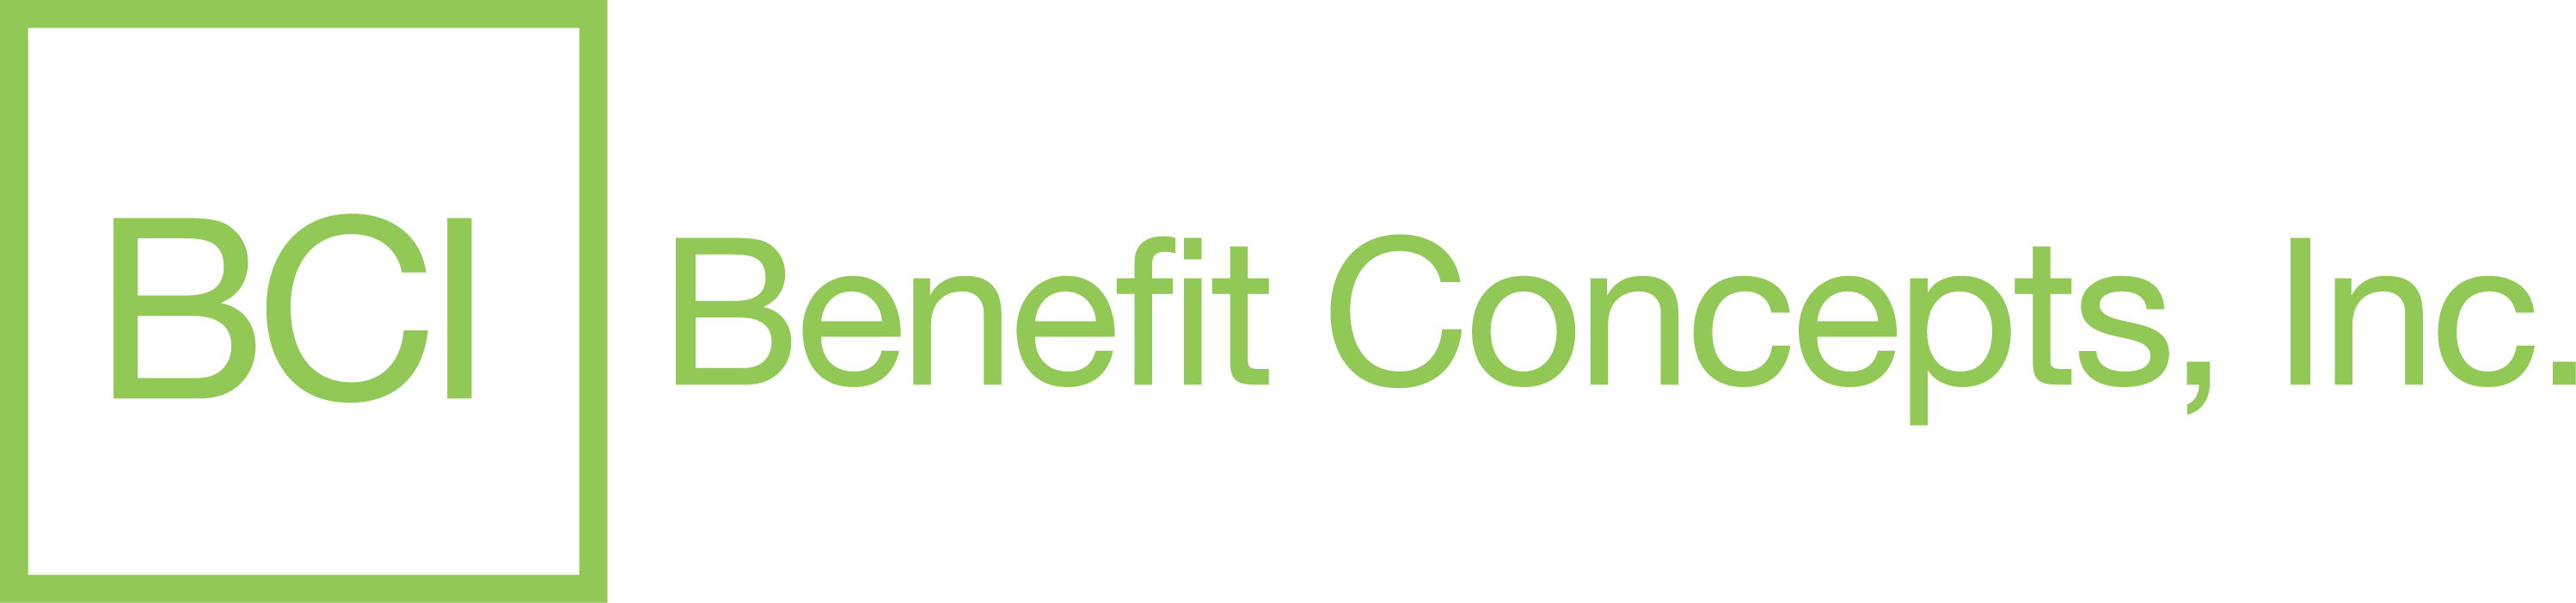 Benefit Concepts, Inc. - The employee benefits broker and group health insurance advisor in Houston